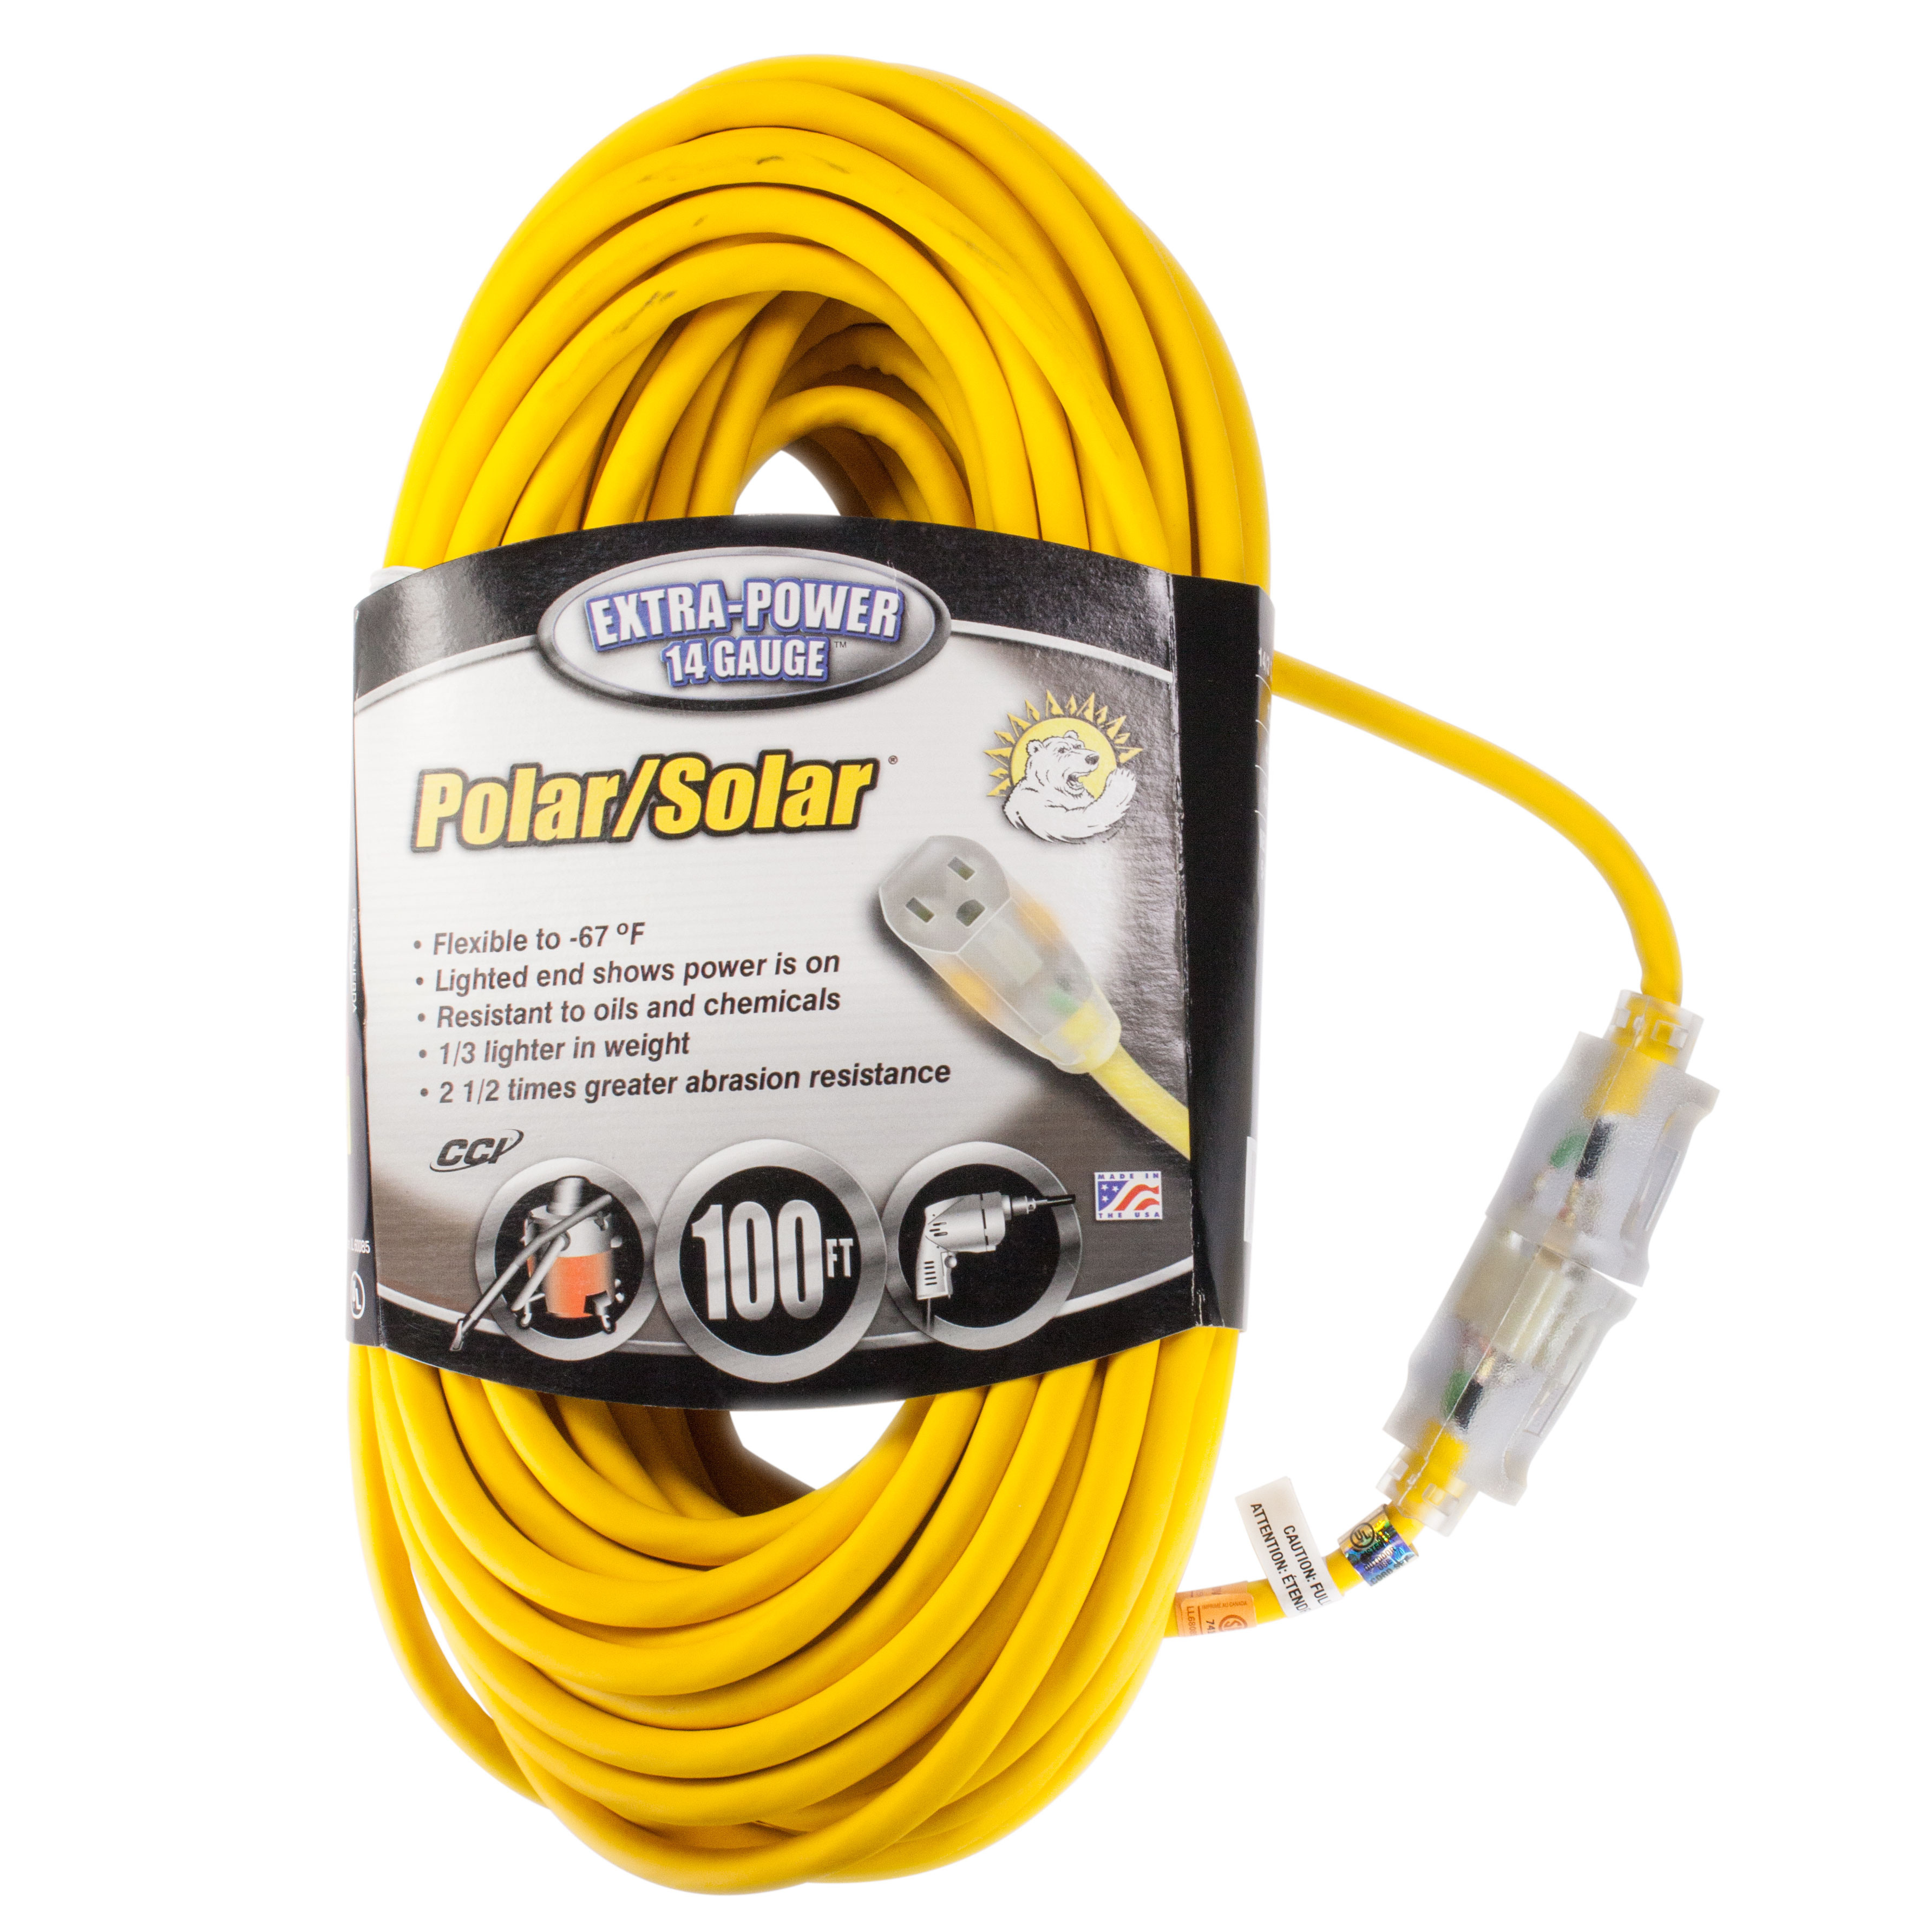 Foot Outdoor Extension Cord Tap To Expand